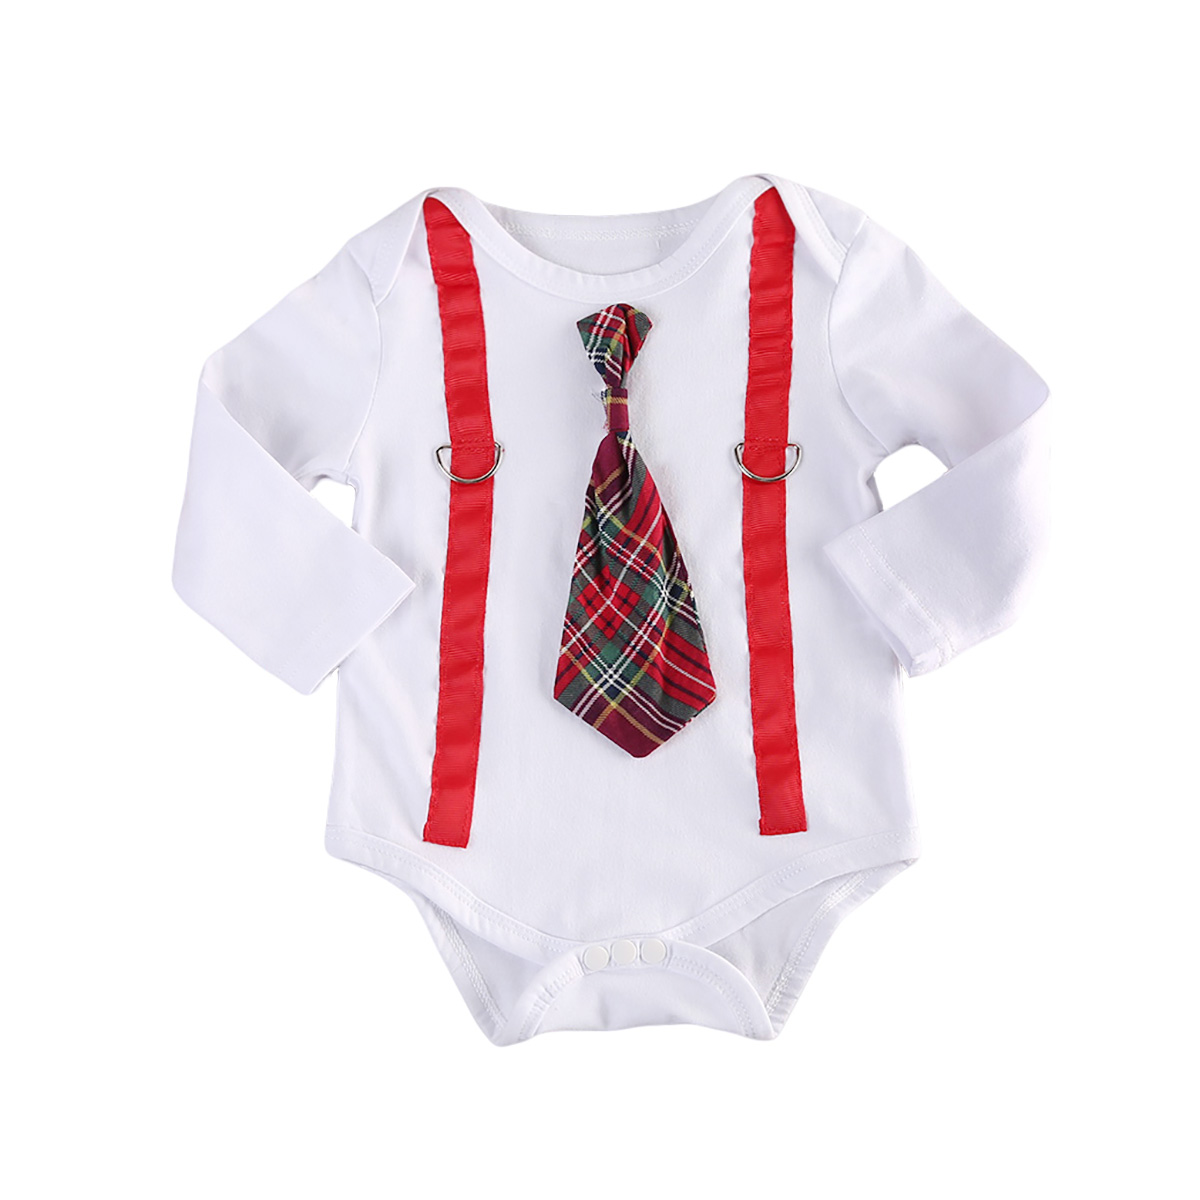 Newborn Baby Boys Clothing Tops Belt Romper Long Sleeve Cotton Formal New Rompers Clothes Baby Boy 0-2T